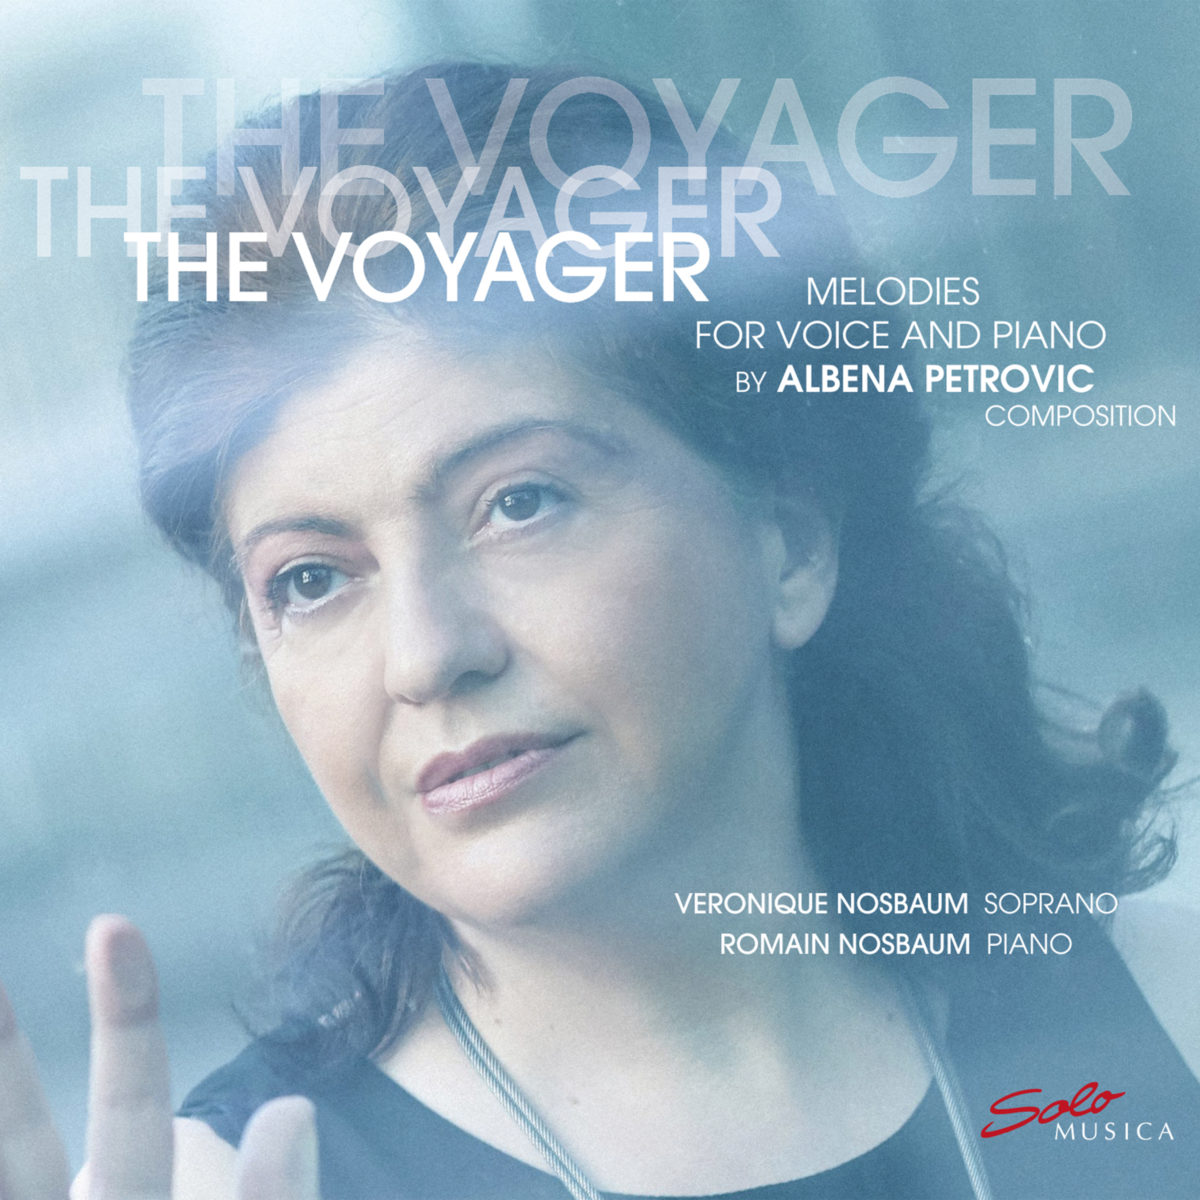 Veronique Nosbaum, Romain Nosbaum, The Voyager – Melodies for Voice and Piano by Albena Petrovic